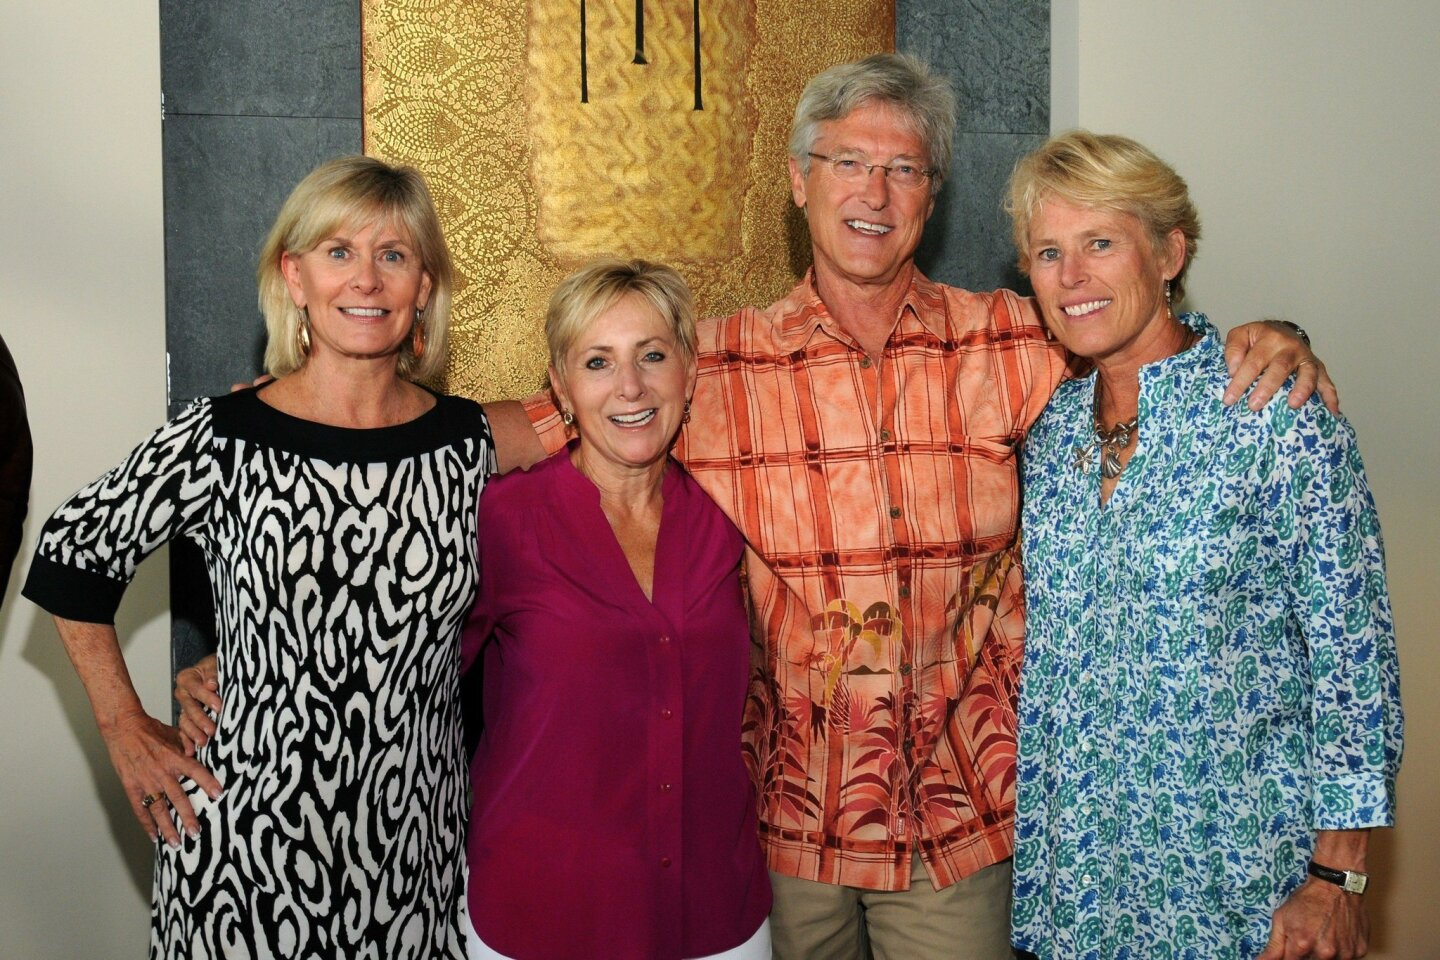 Chris Andrews, Estel and Wally Binder, Jill Walsh